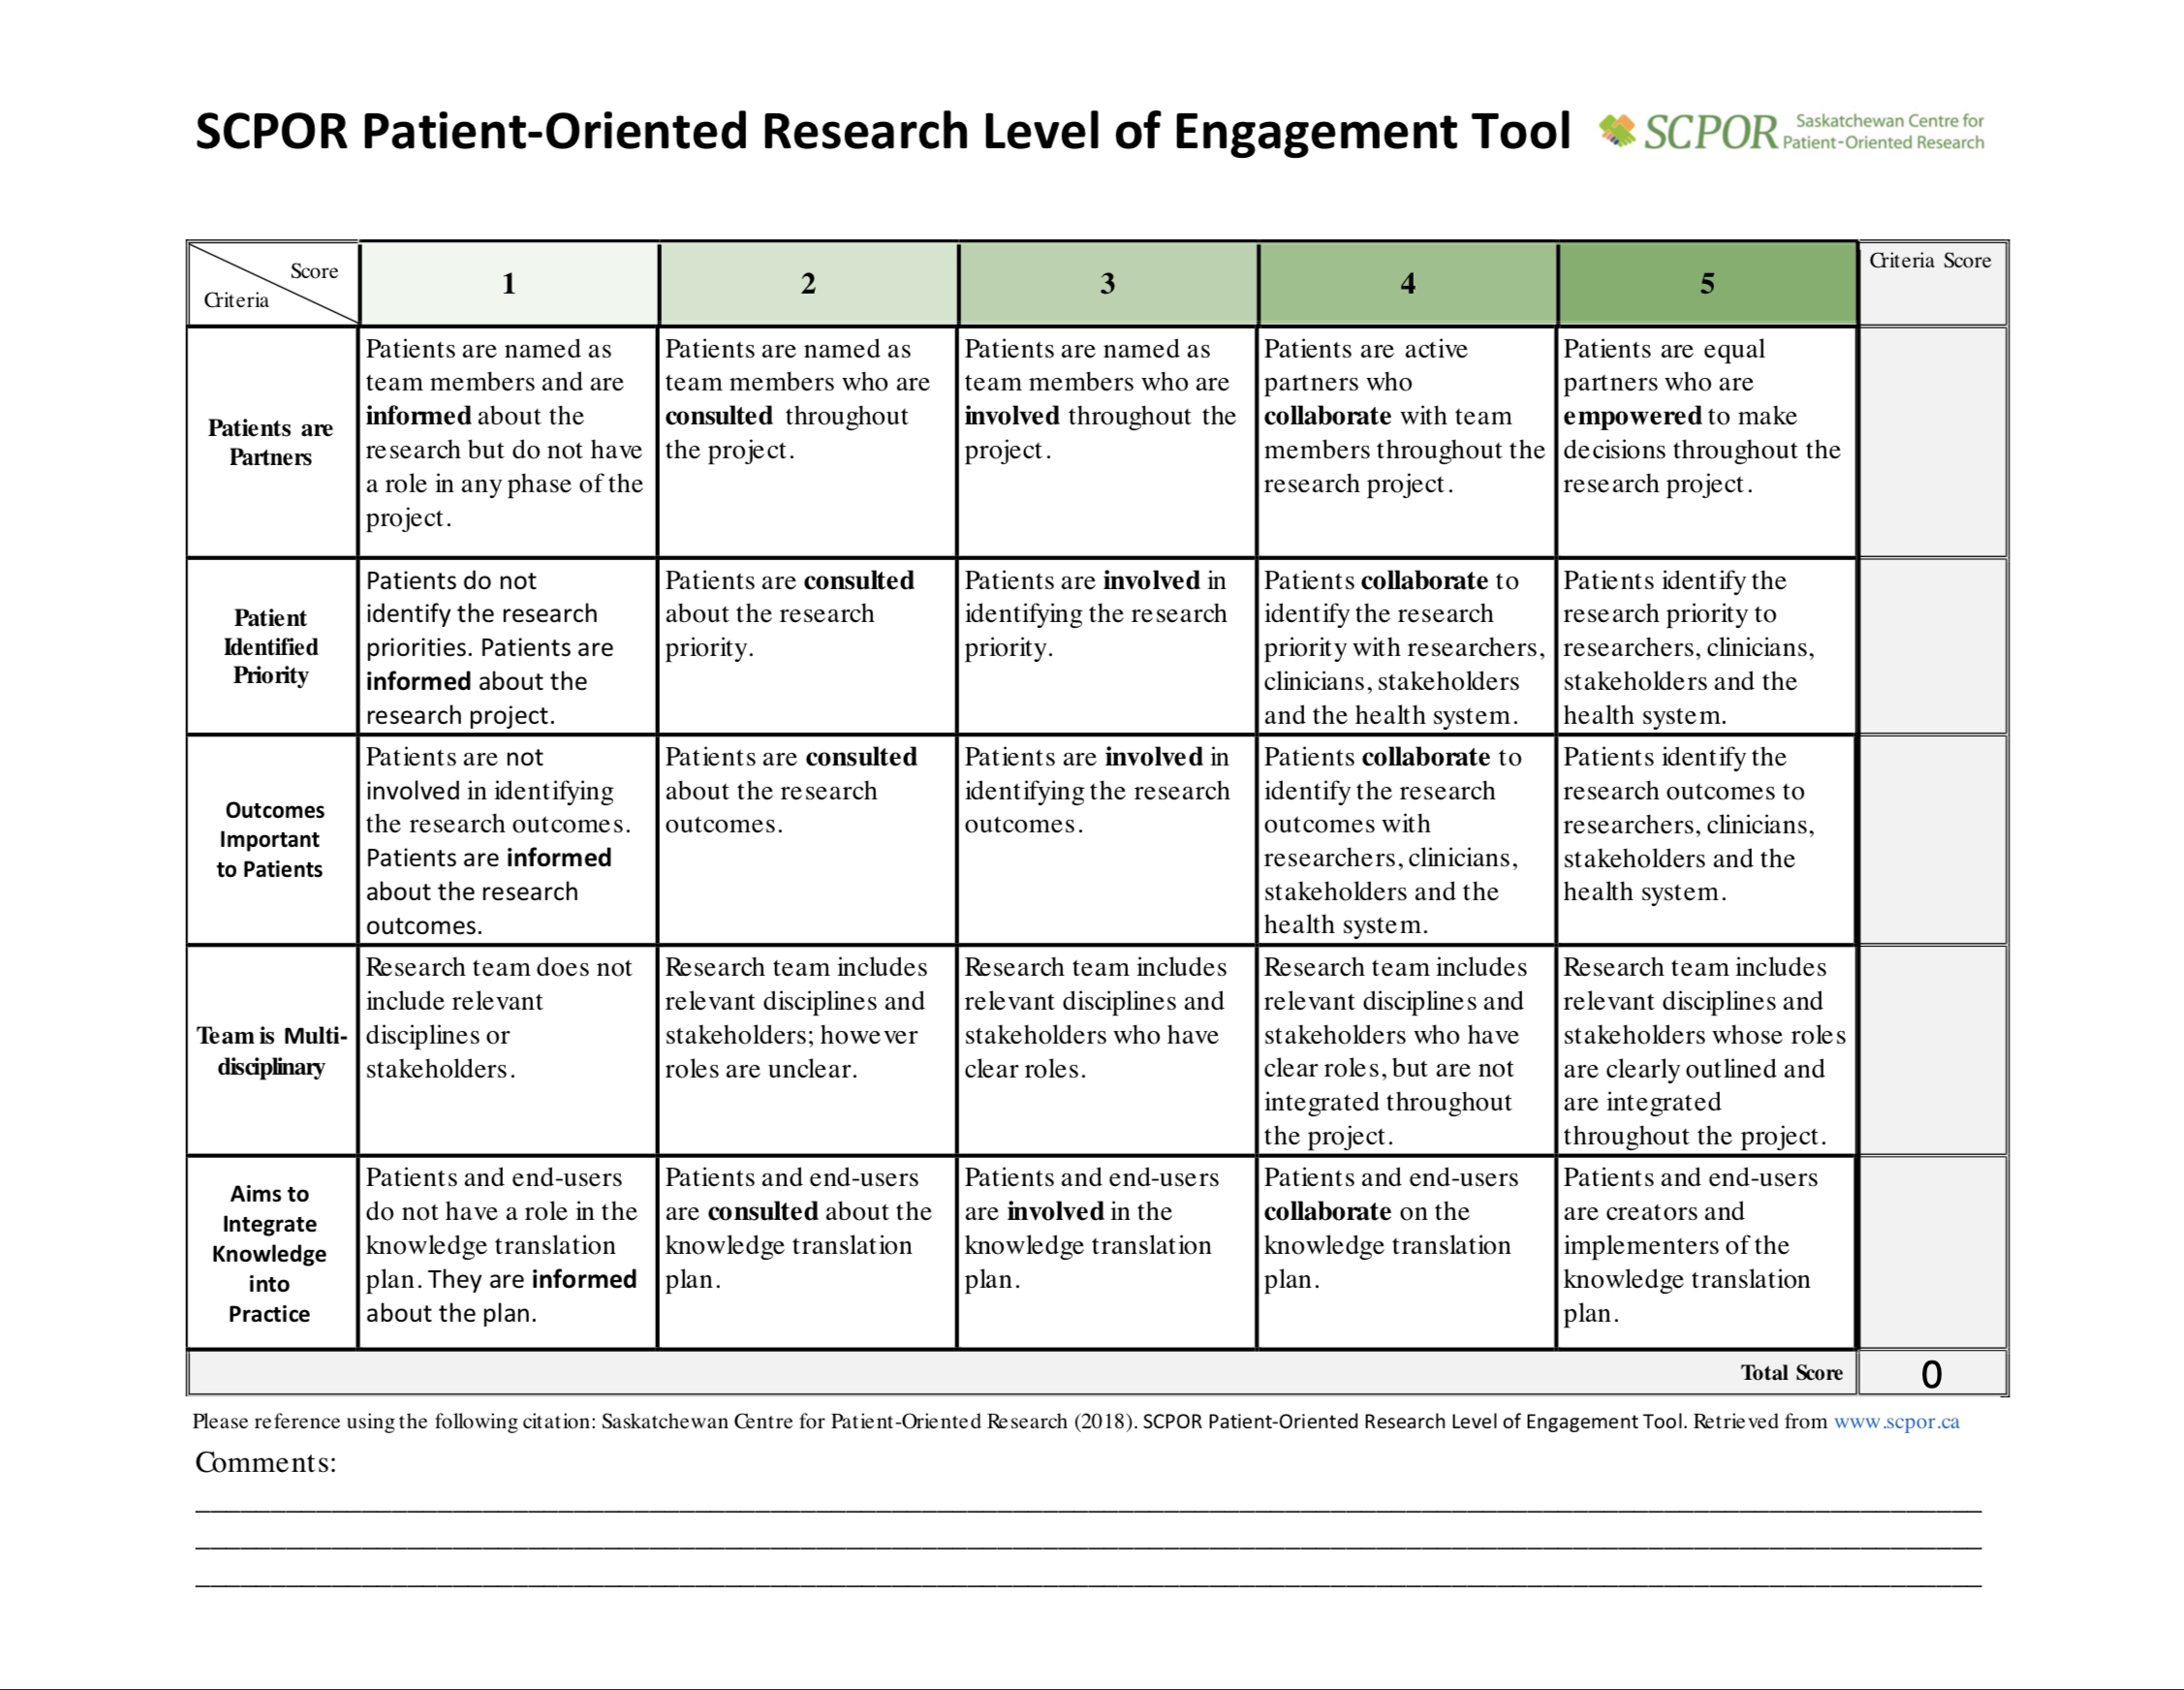 SCPOR+Patient-Oriented+Research+Level+of+Engagement+Tool.png